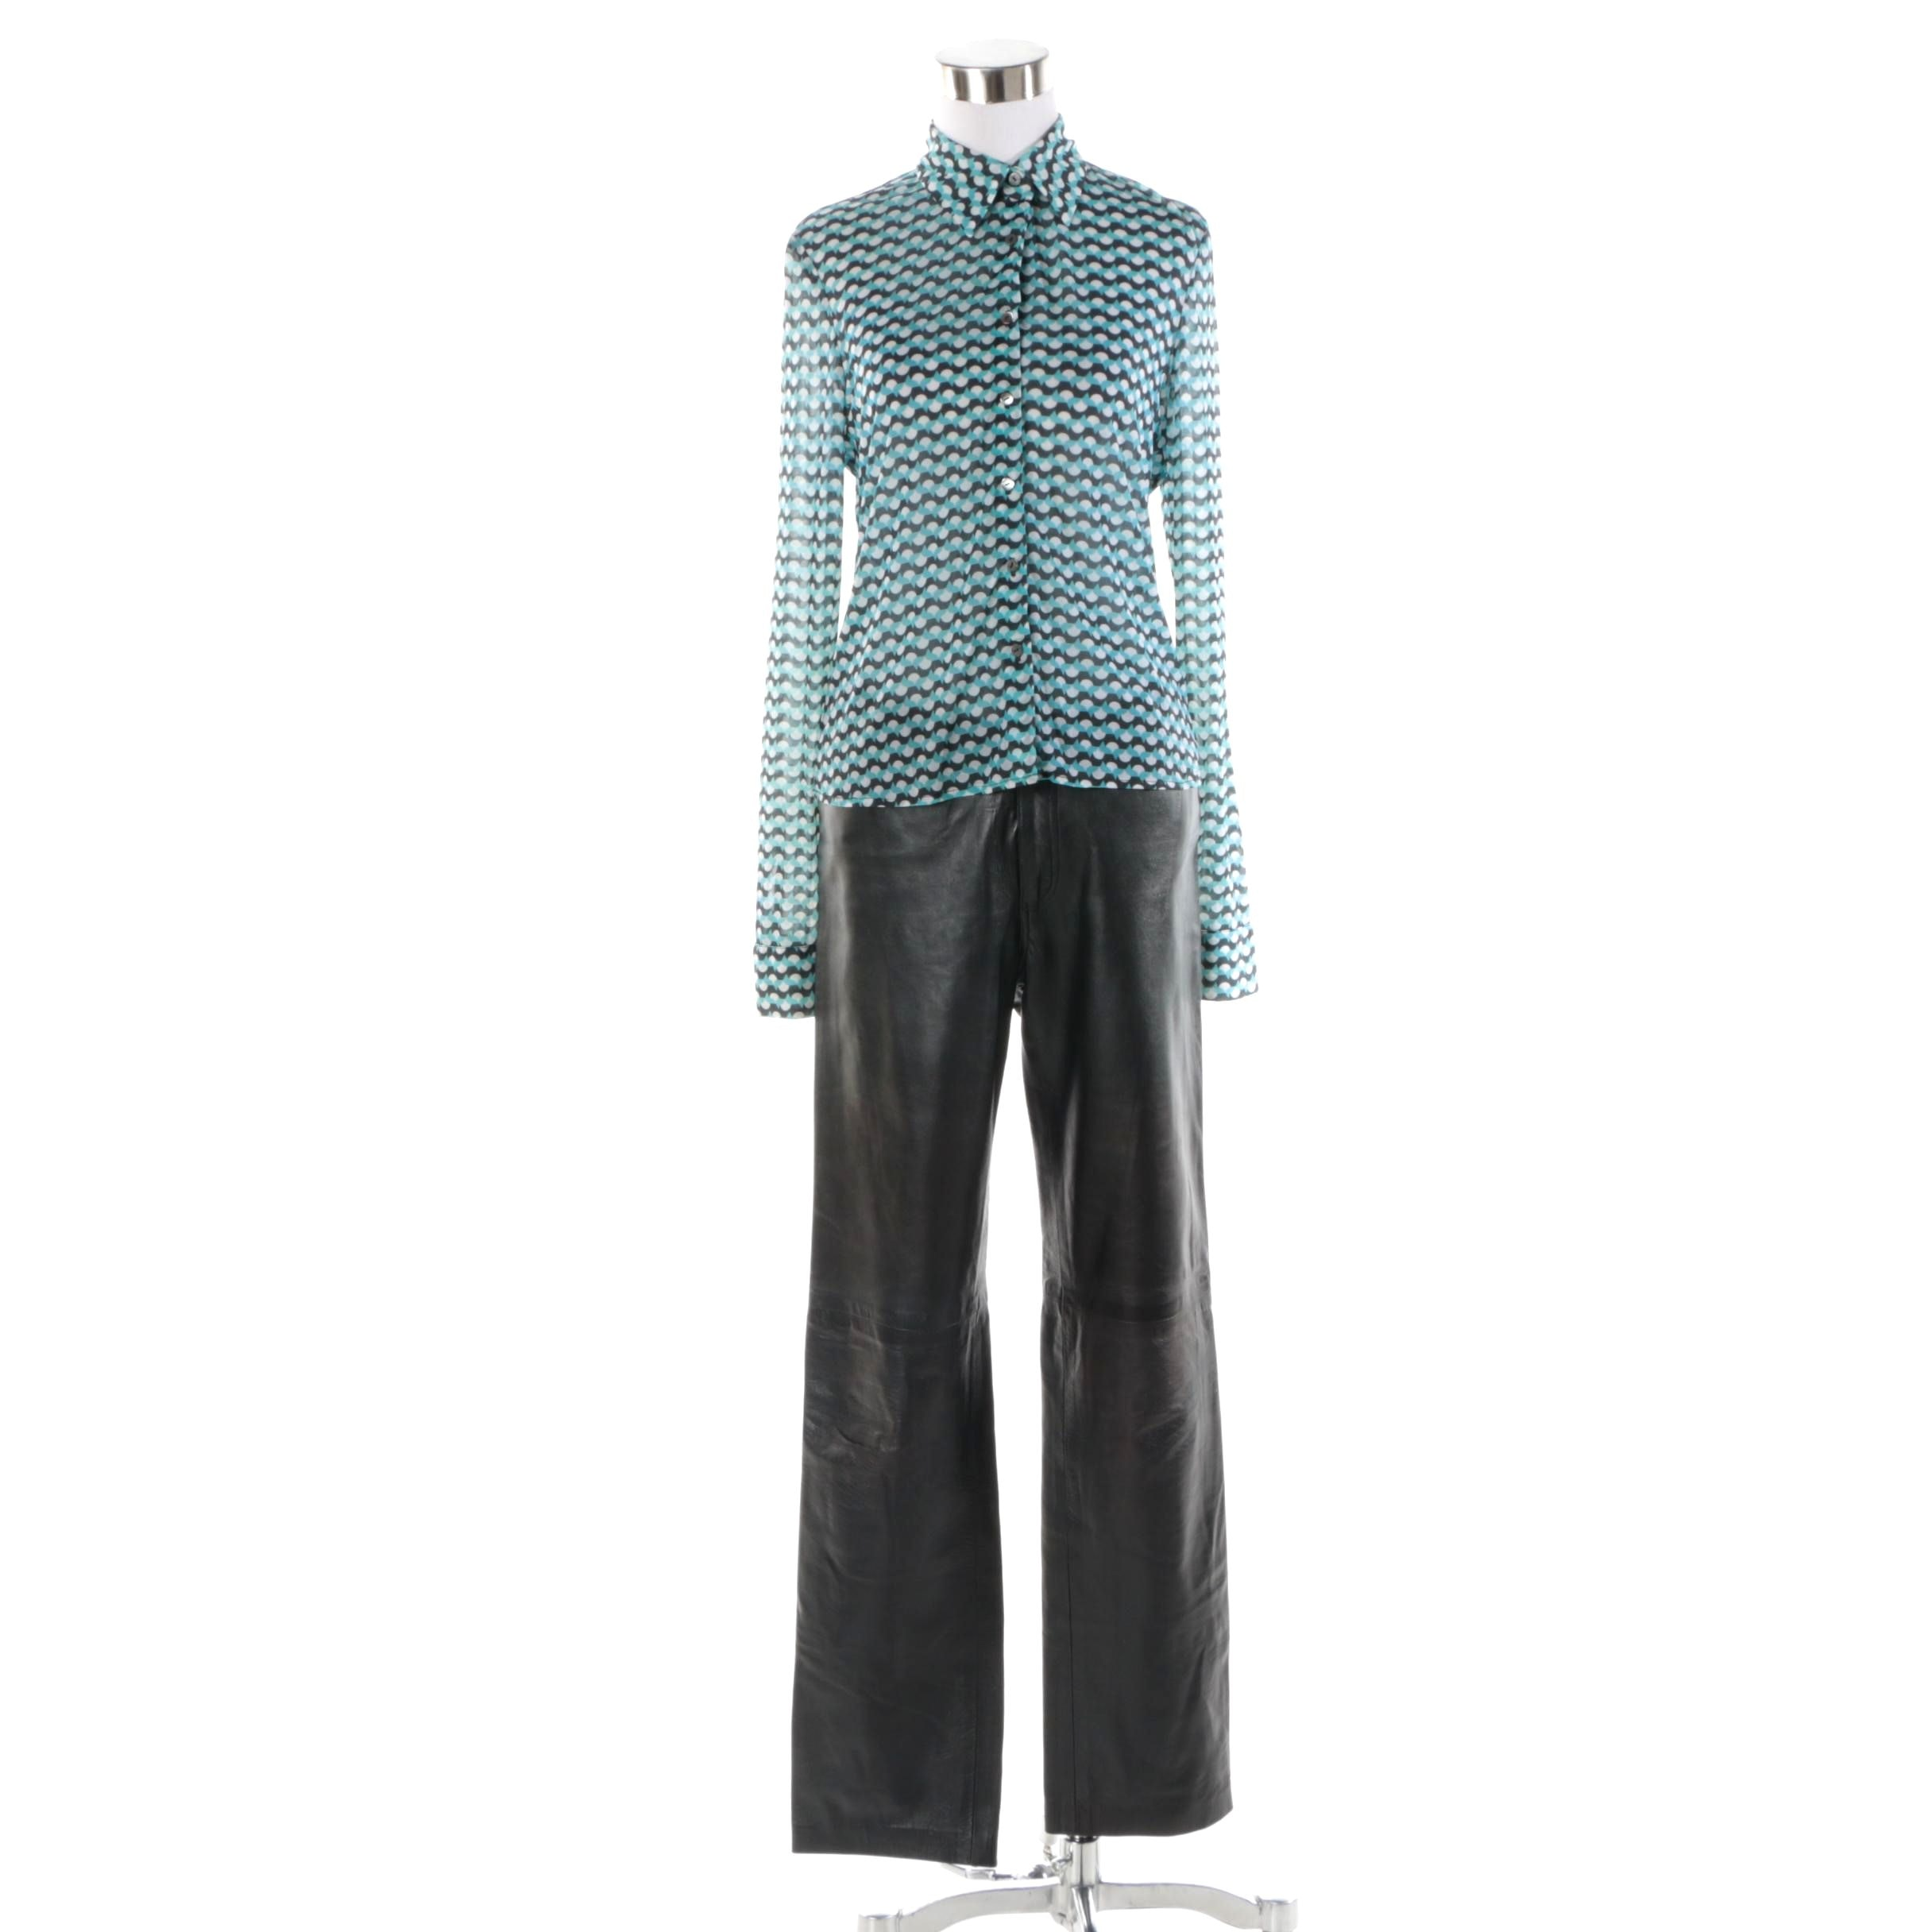 Women's John Patrick Silk Blend Button-Front Shirt and Faux Leather Pants